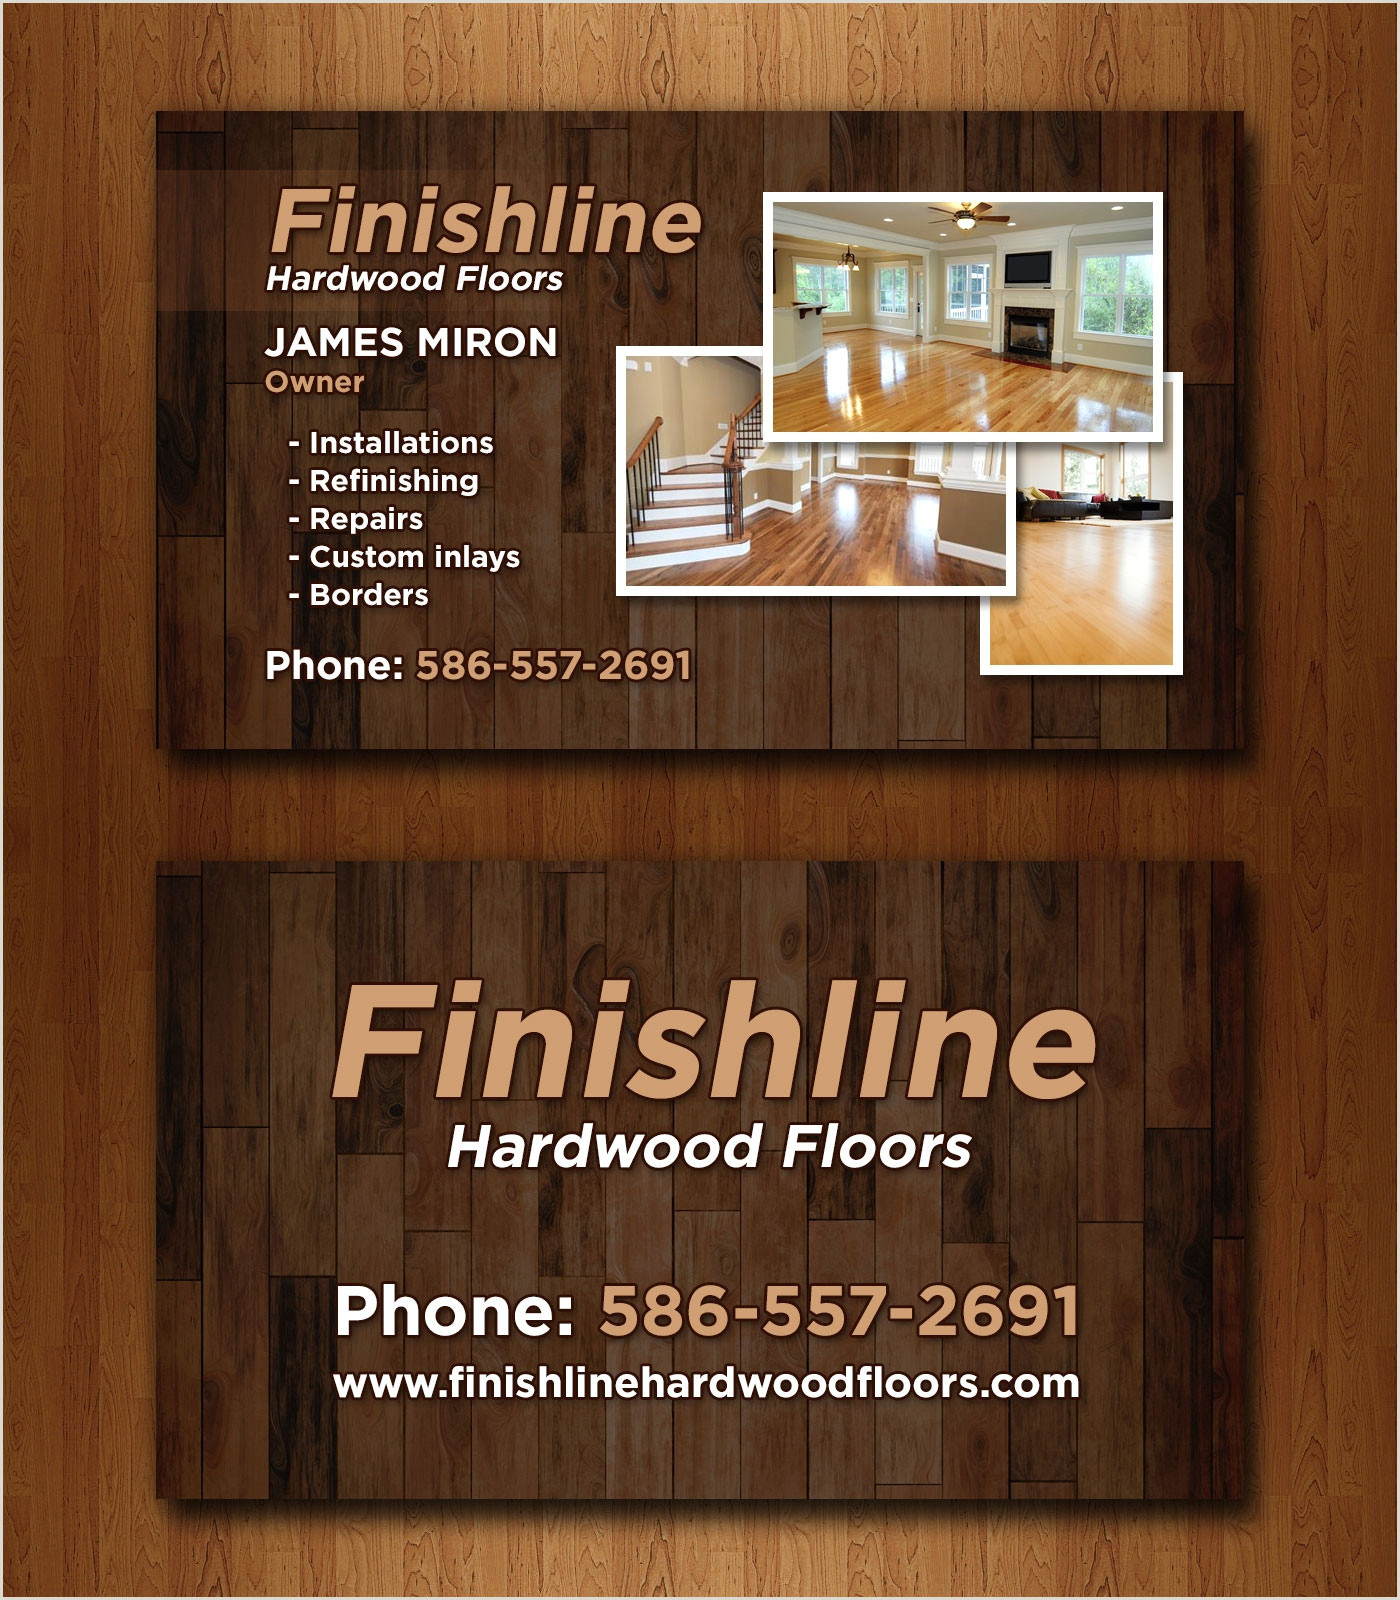 Personal Business Card Template 14 Popular Hardwood Flooring Business Card Template